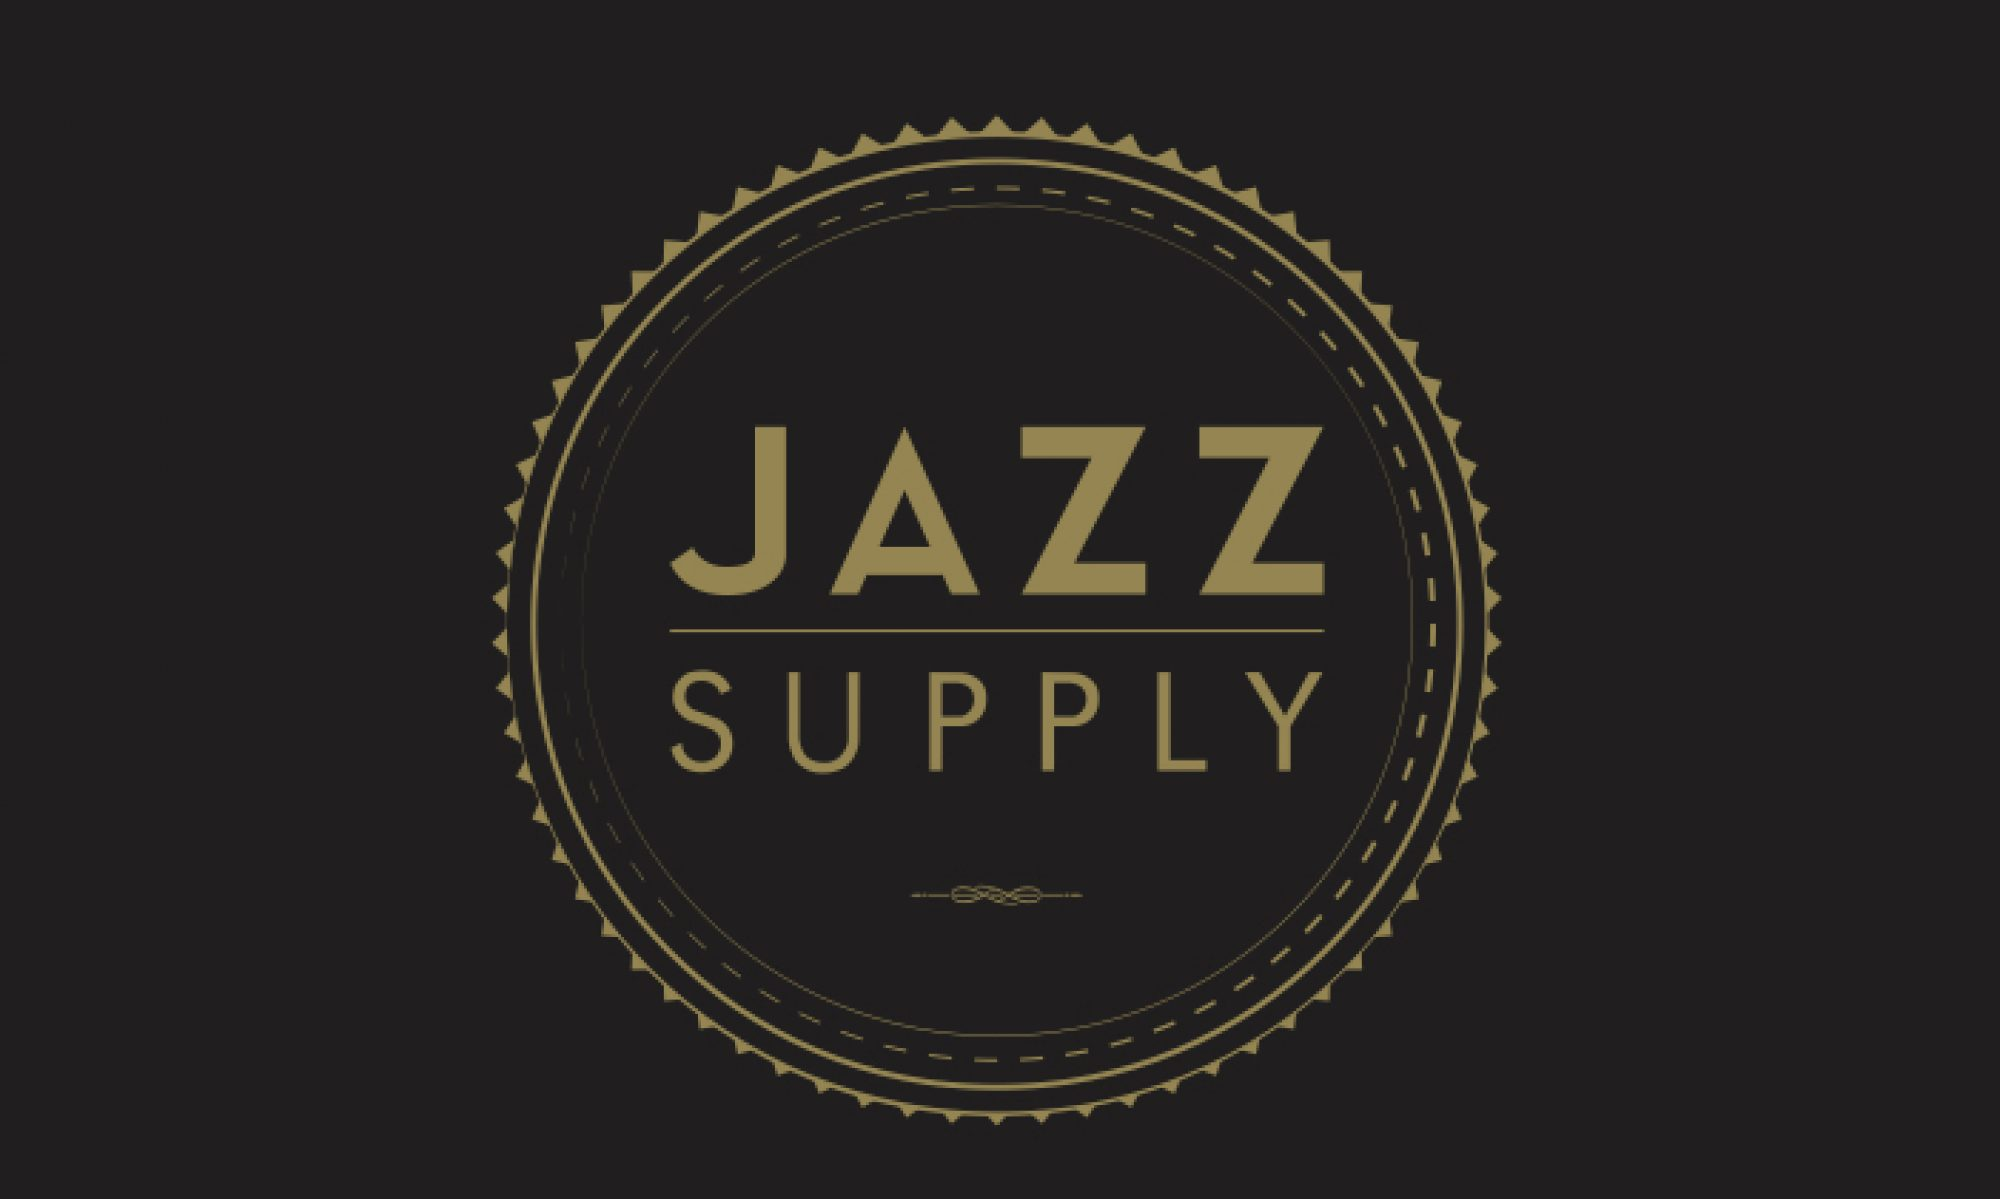 The Jazz Supply